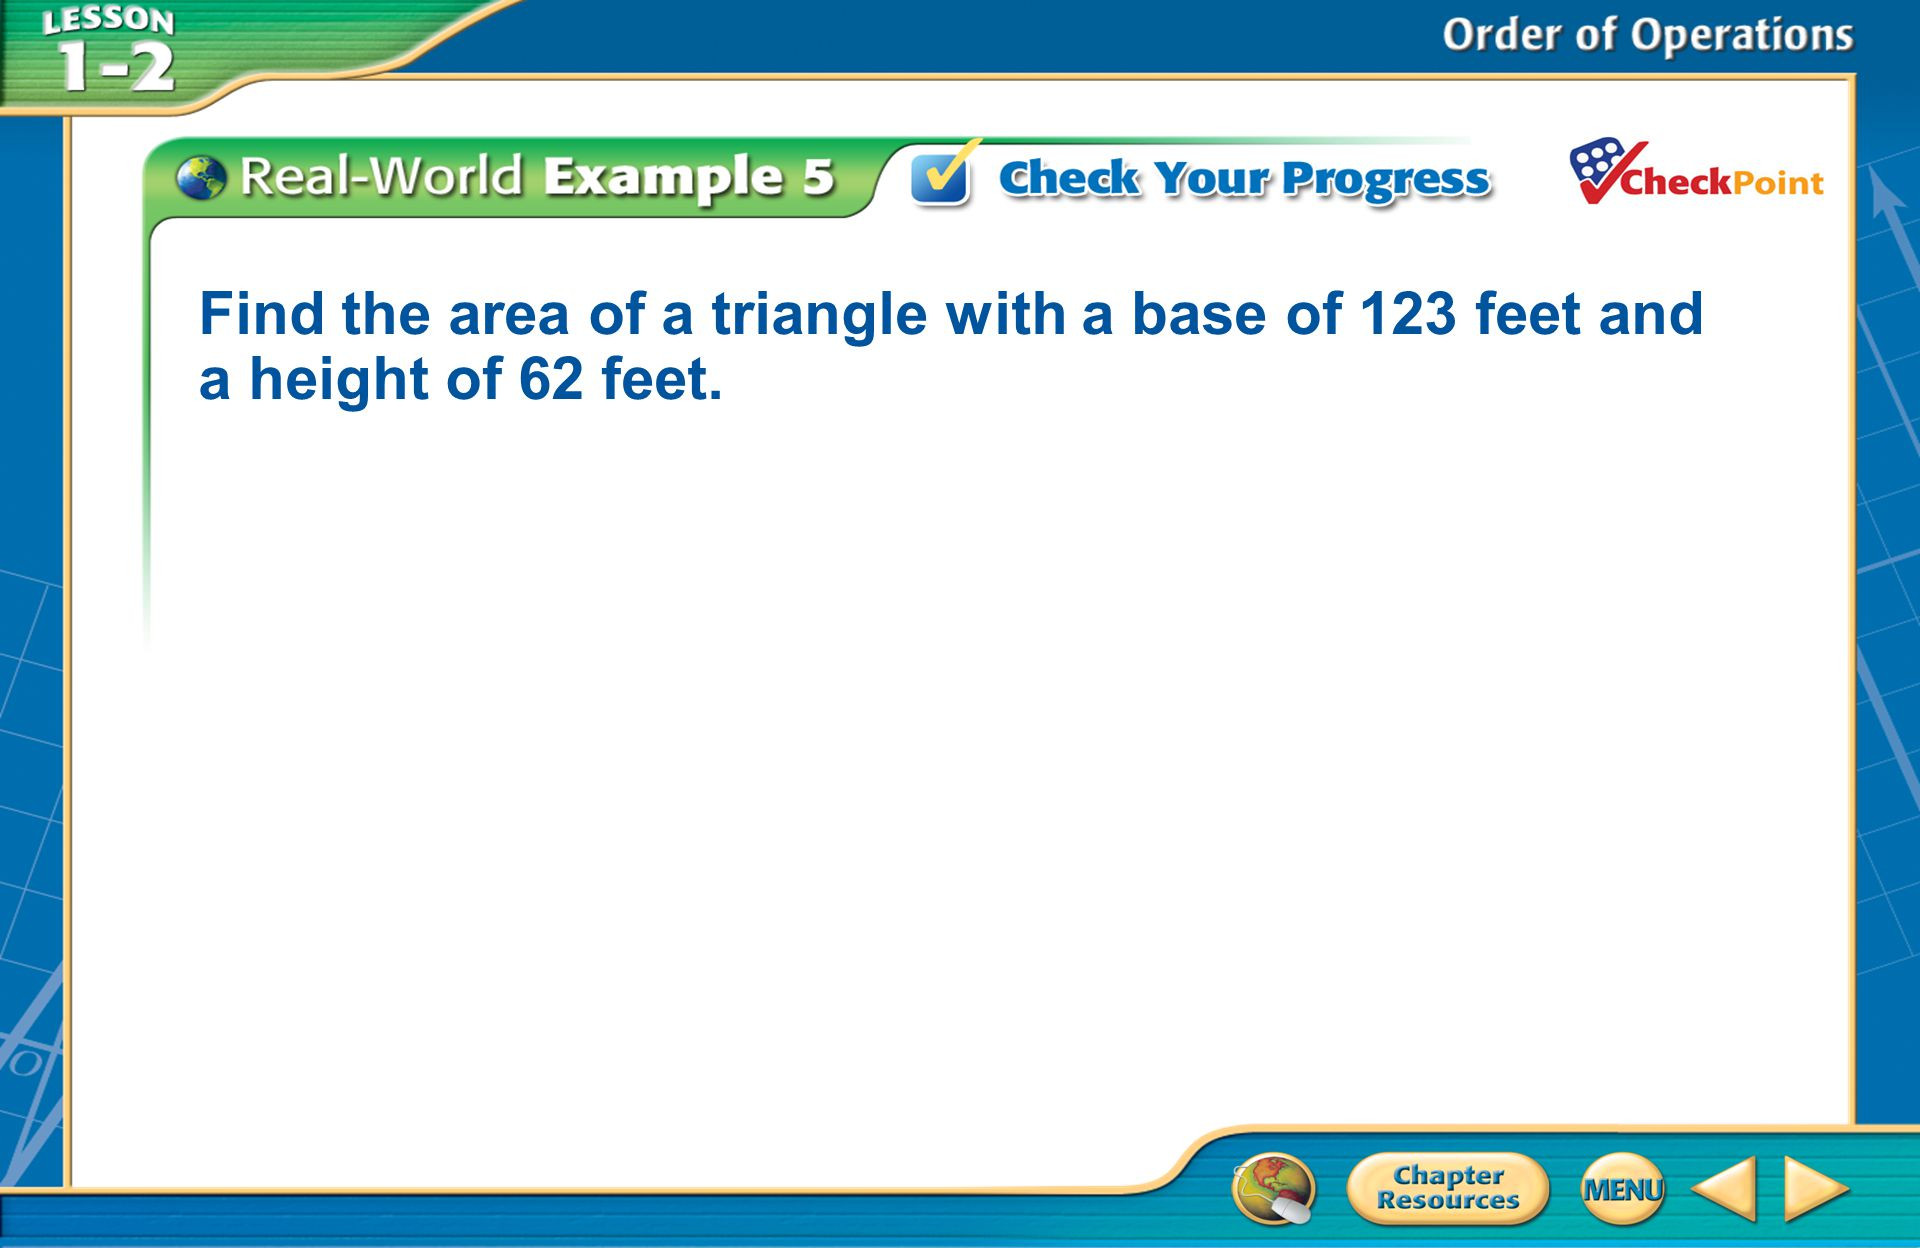 [Enter question here] Find the area of a triangle with a base of 123 feet and a height of 62 feet.